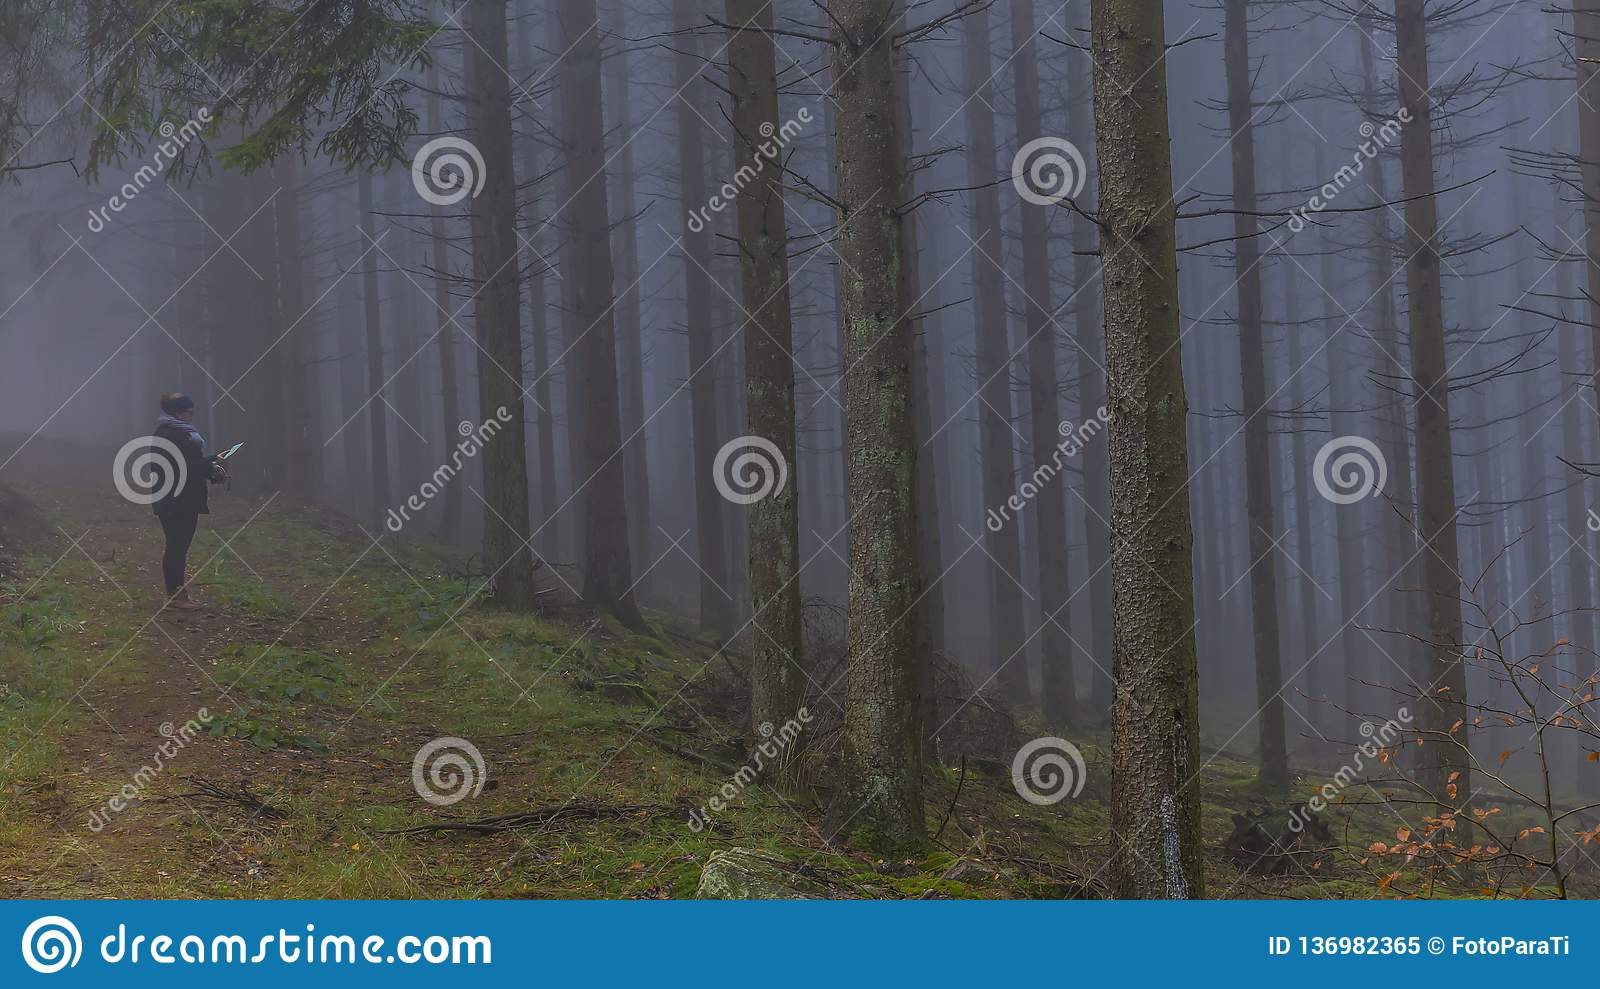 Image of a woman observing a paper map among tall pine trees in the forest